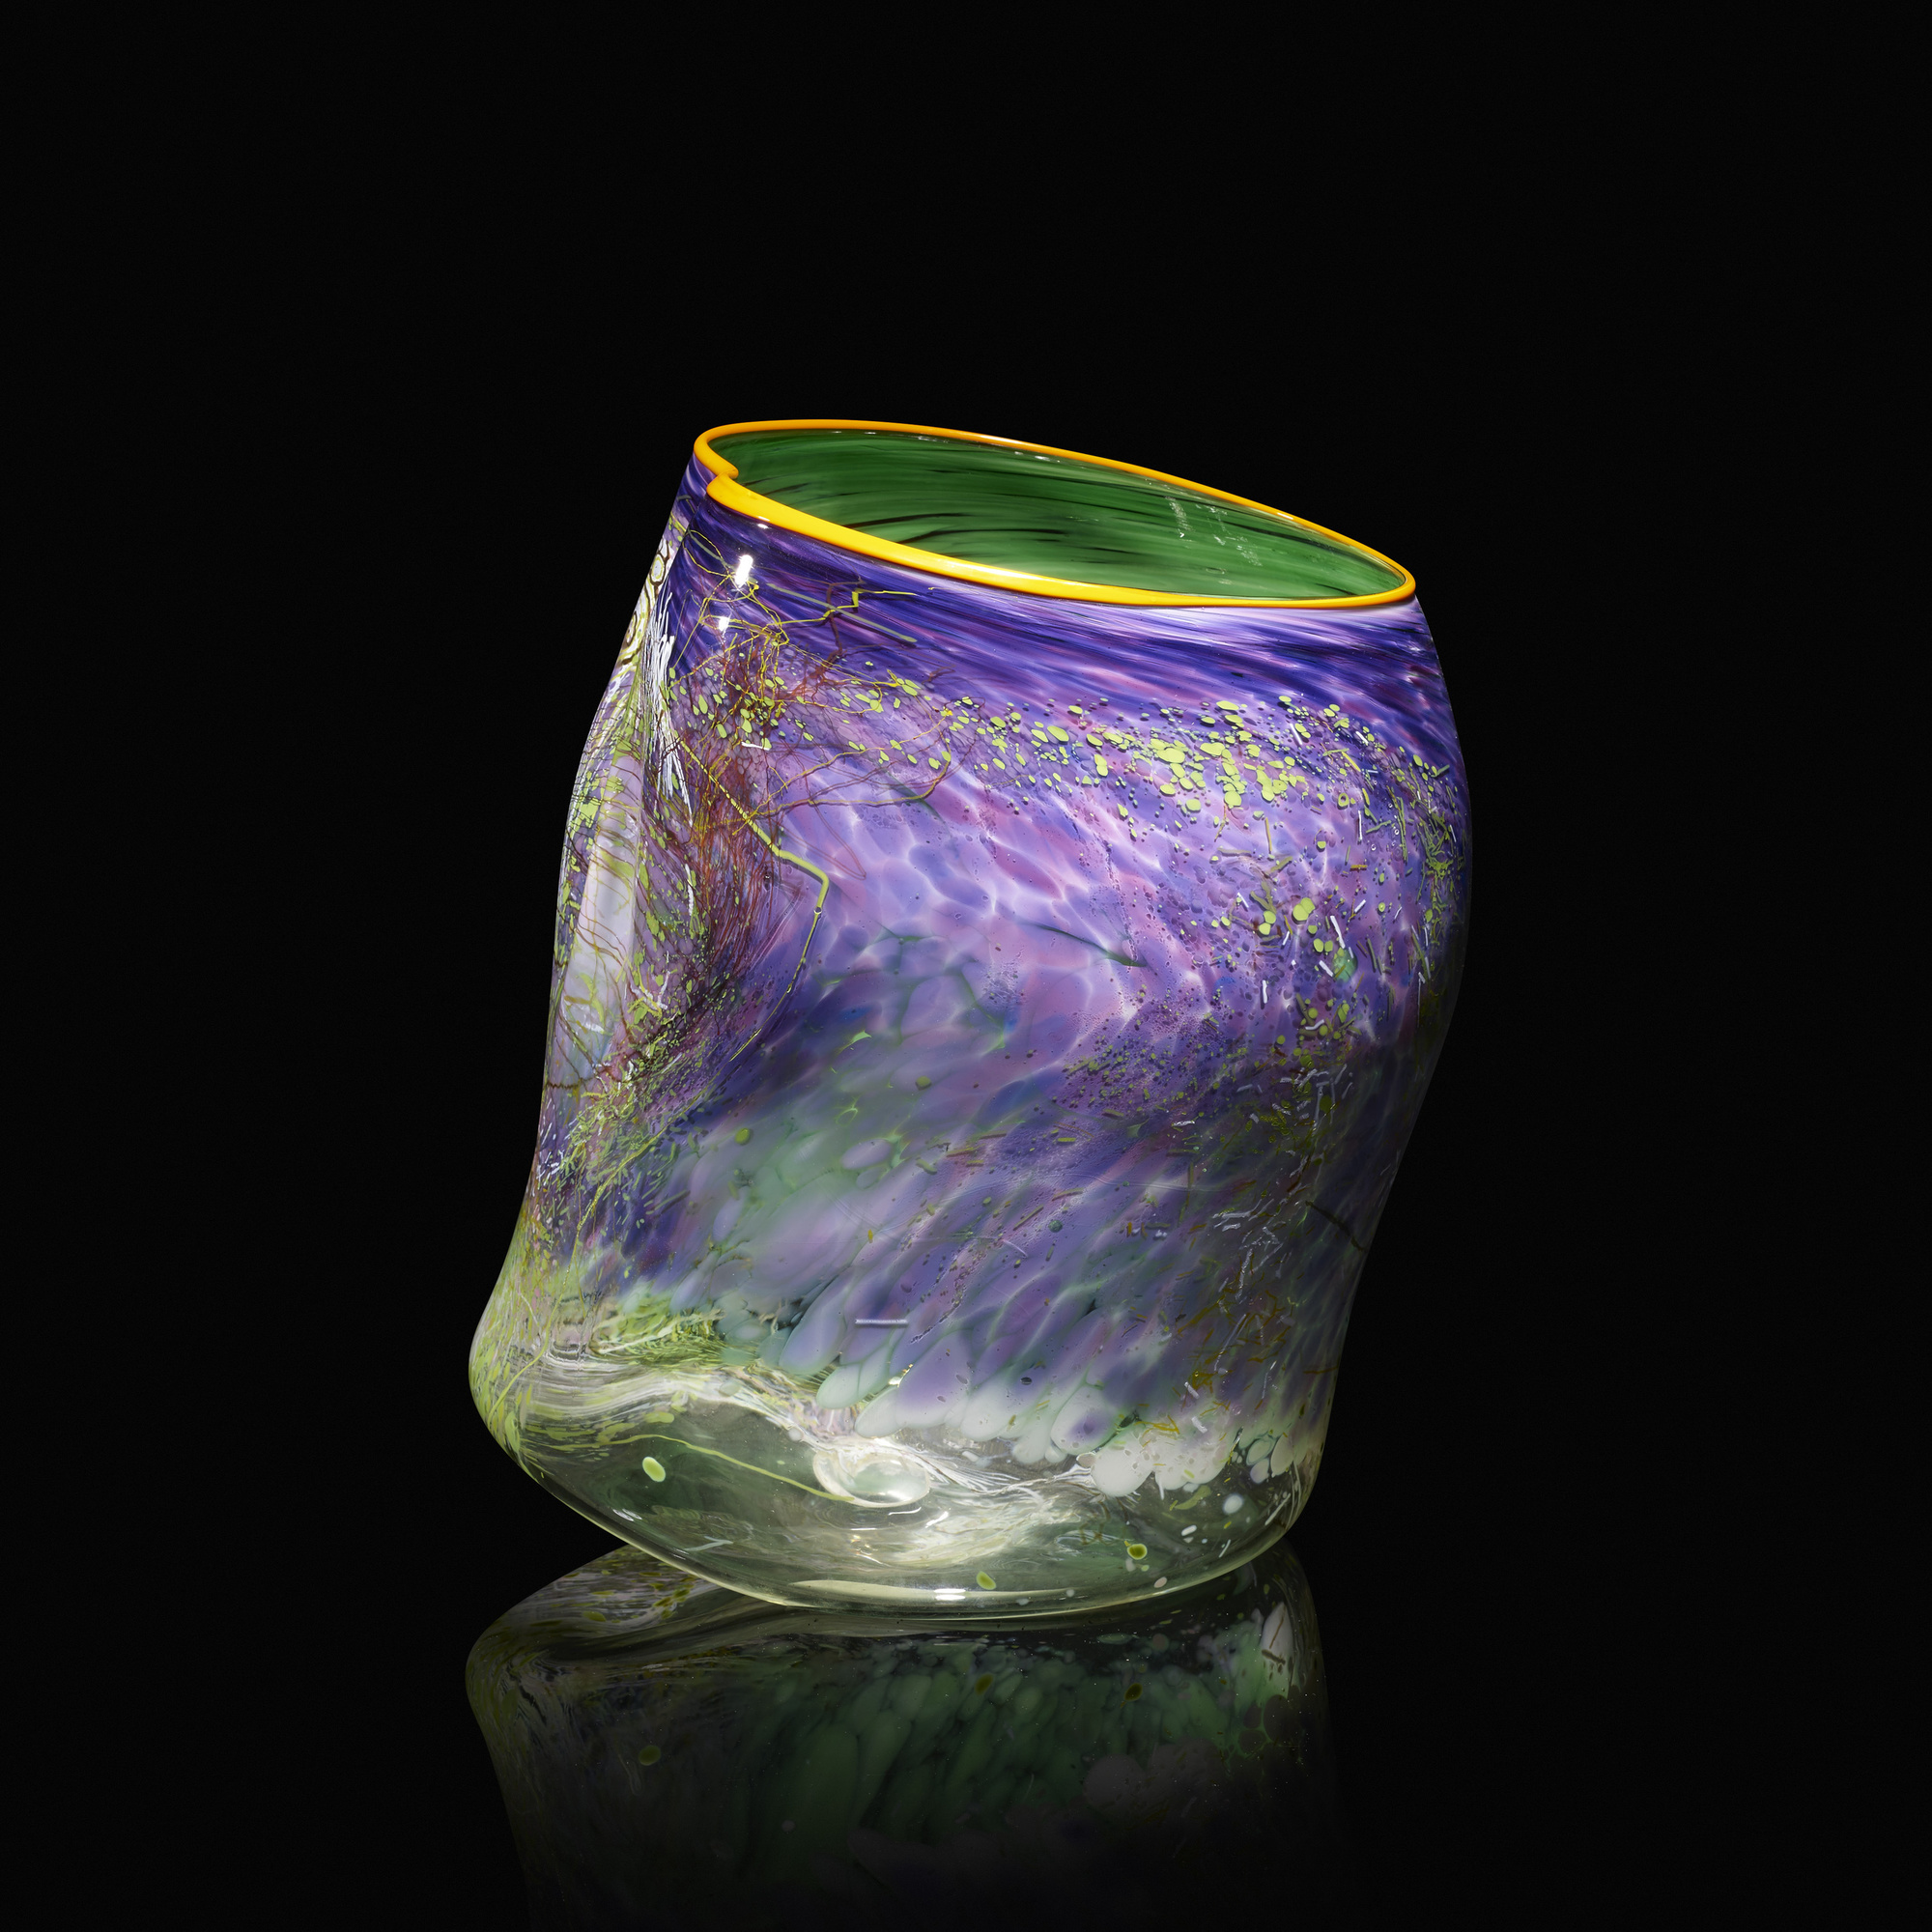 104: Dale Chihuly / Purple Lake Soft Cylinder with Terre Verte Drawing (1 of 3)